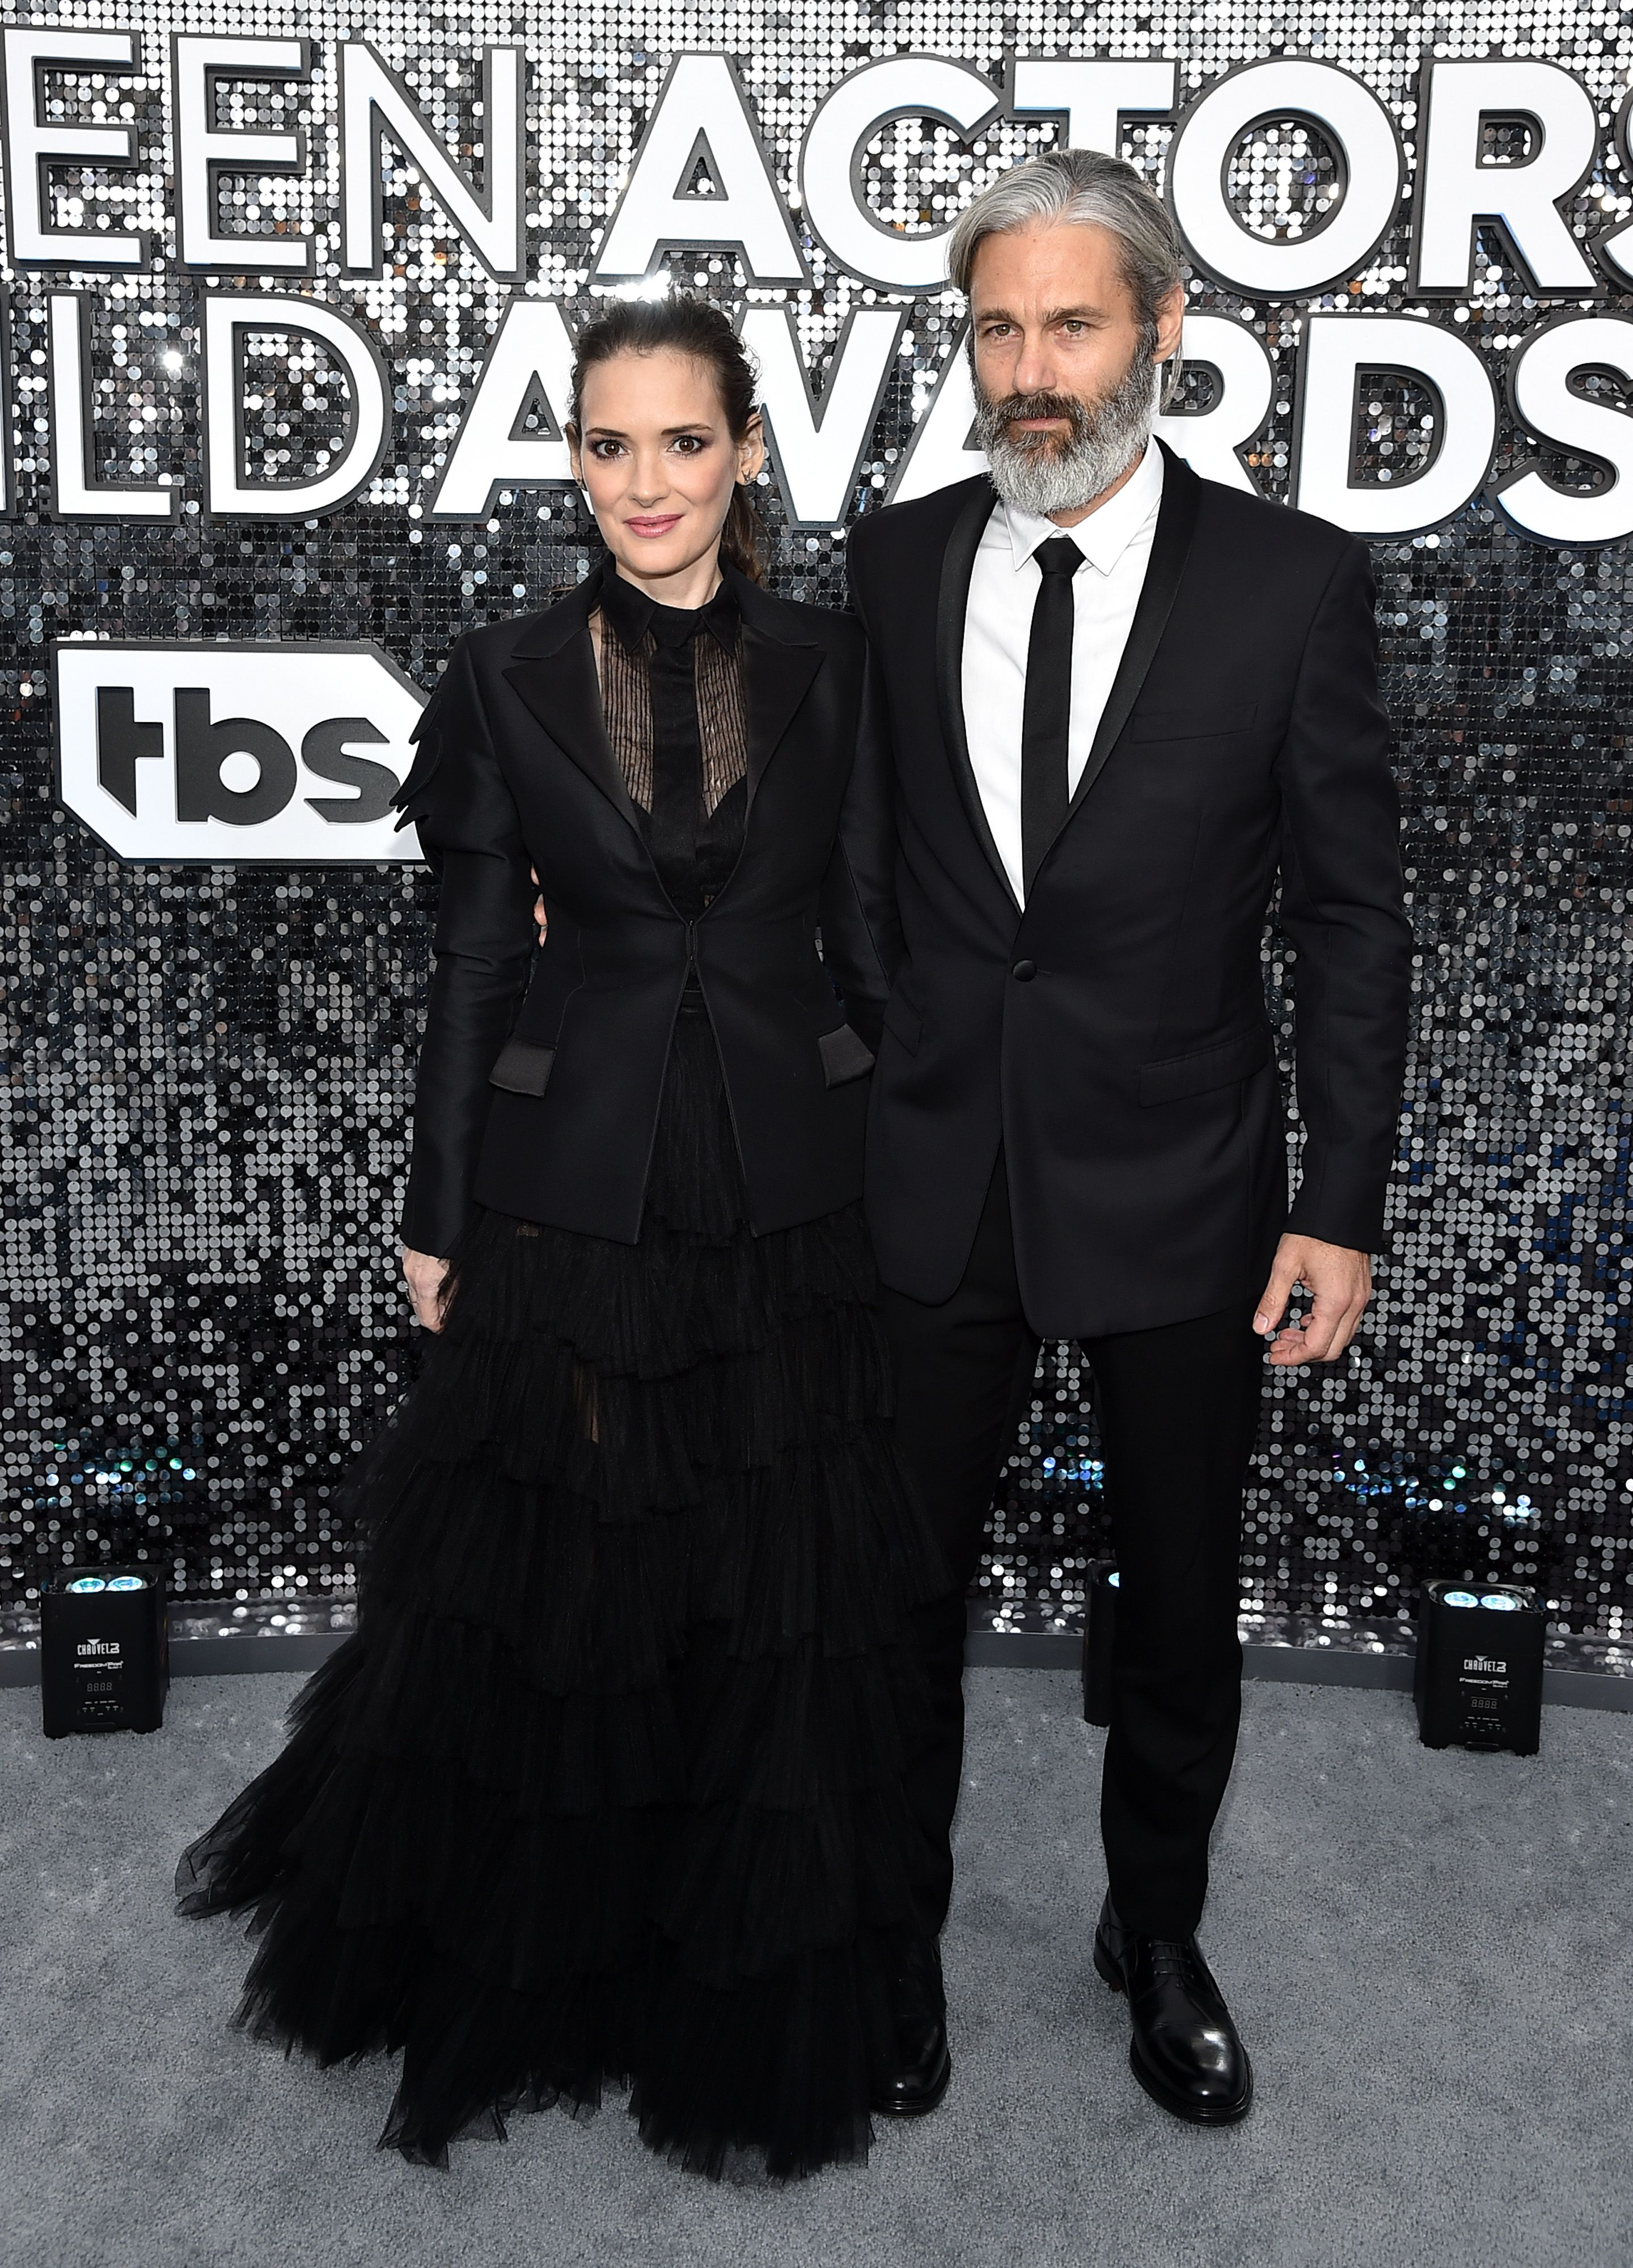 Winona Ryder and Scott Mackinlay Hahn at the 26th Annual Screen Actors Guild Awards in January 2020 in Los Angeles | Source: Getty Images